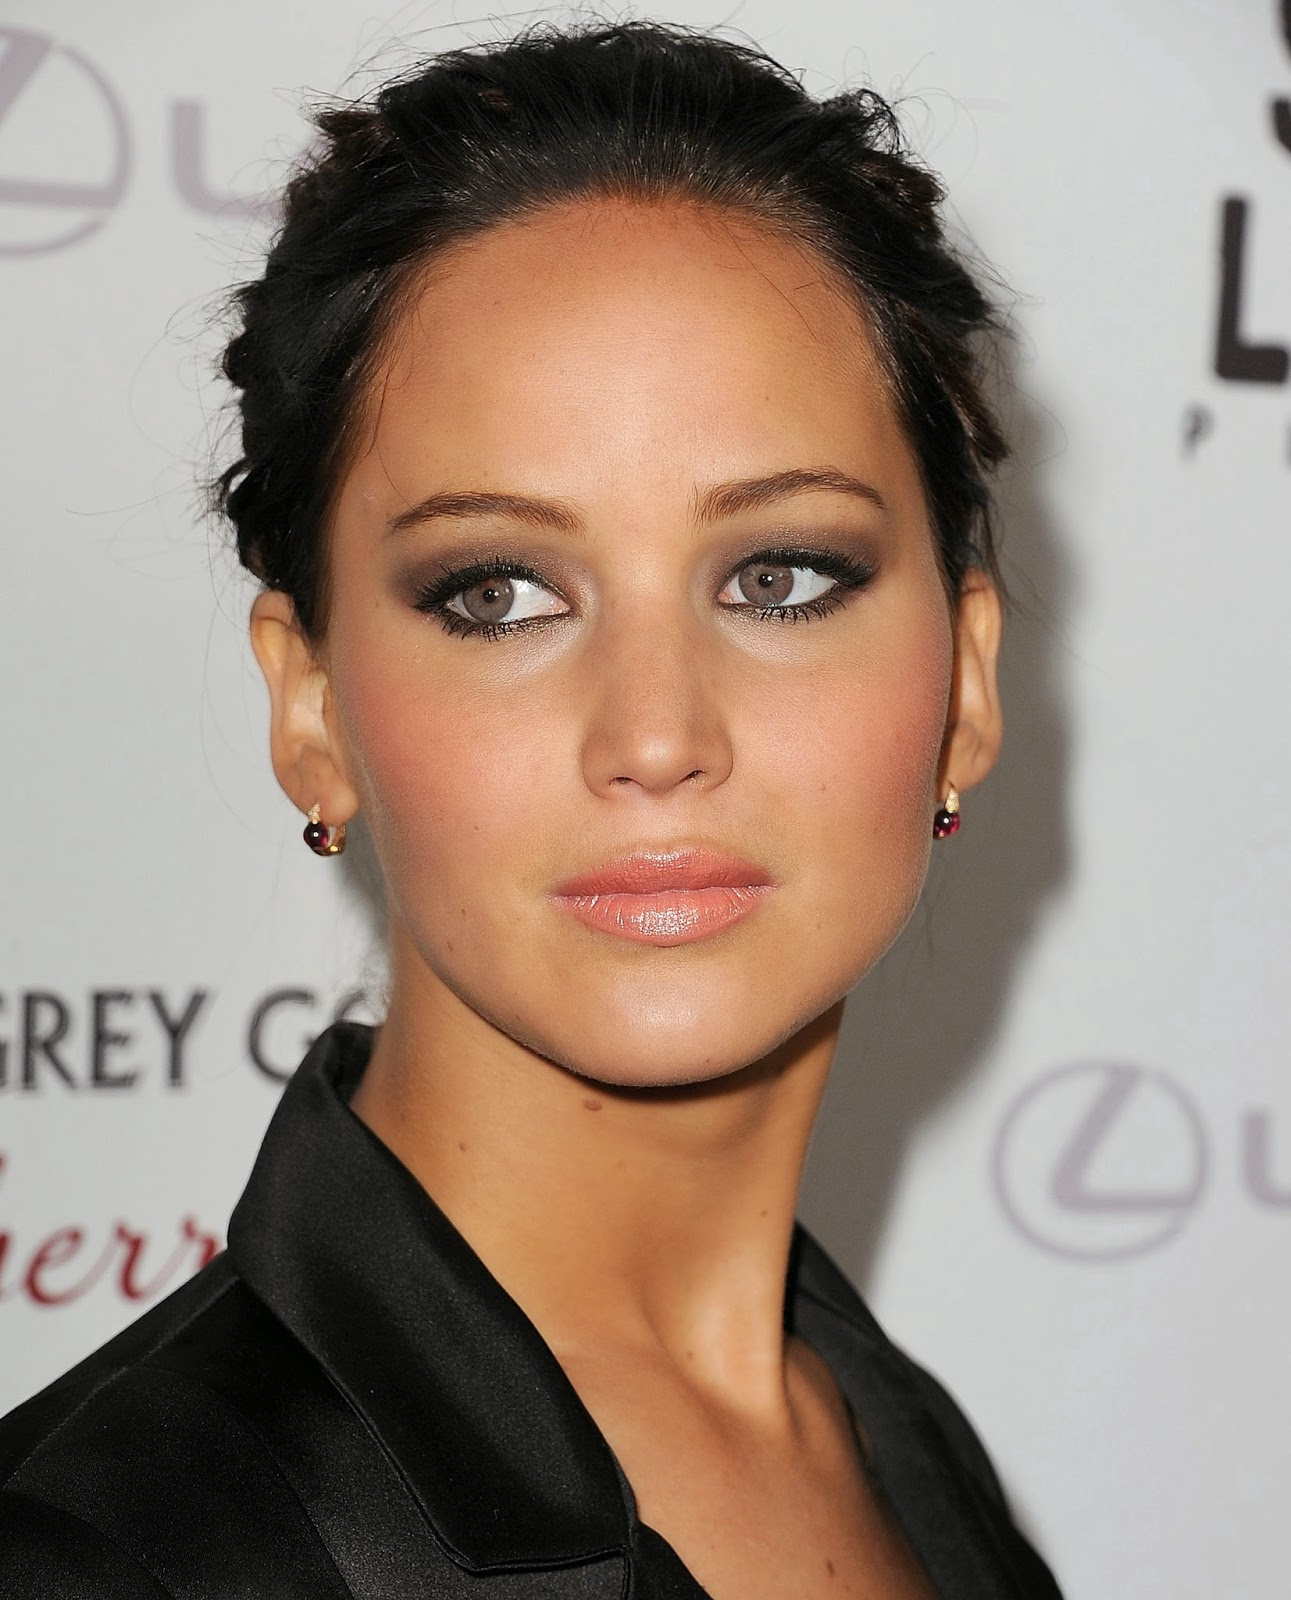 Jennifer Lawrence With Brown Contacts